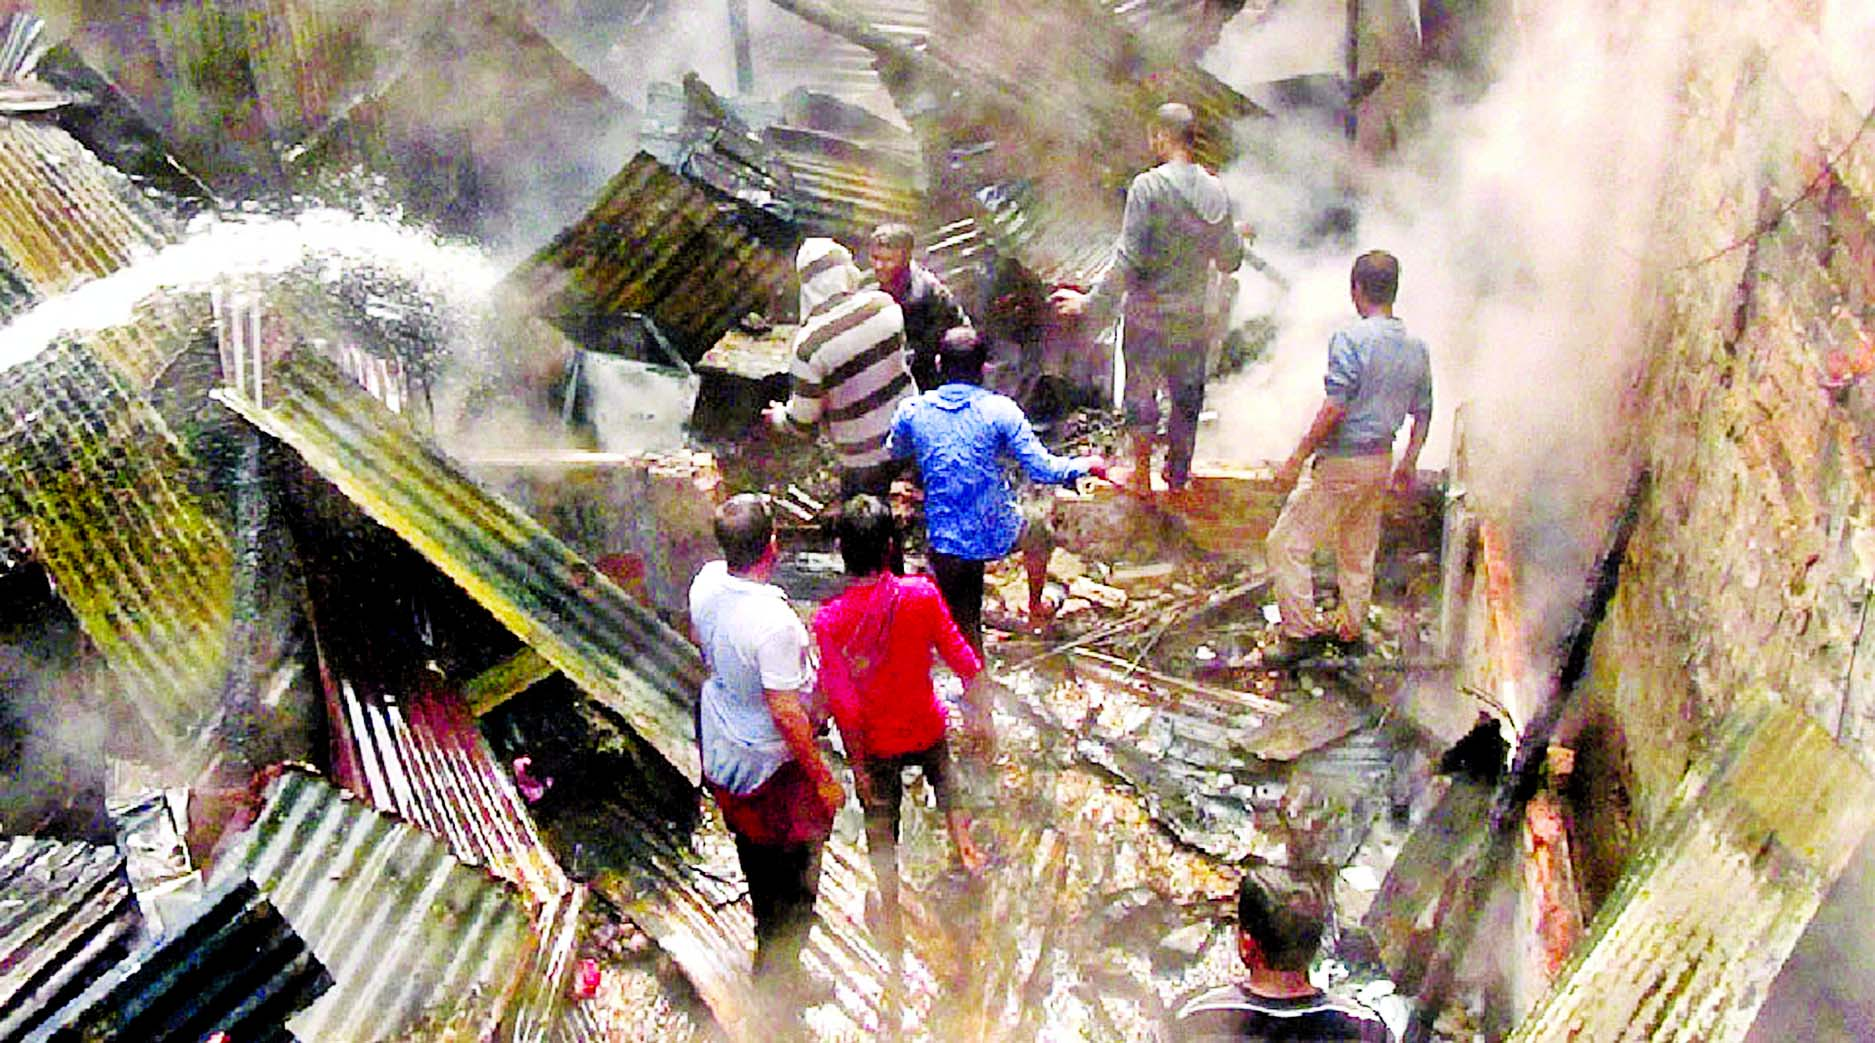 Firefighters and locals try to extinguish fire that broke out at a two-storey building in Moulvibazar, Sylhet on Tuesday.